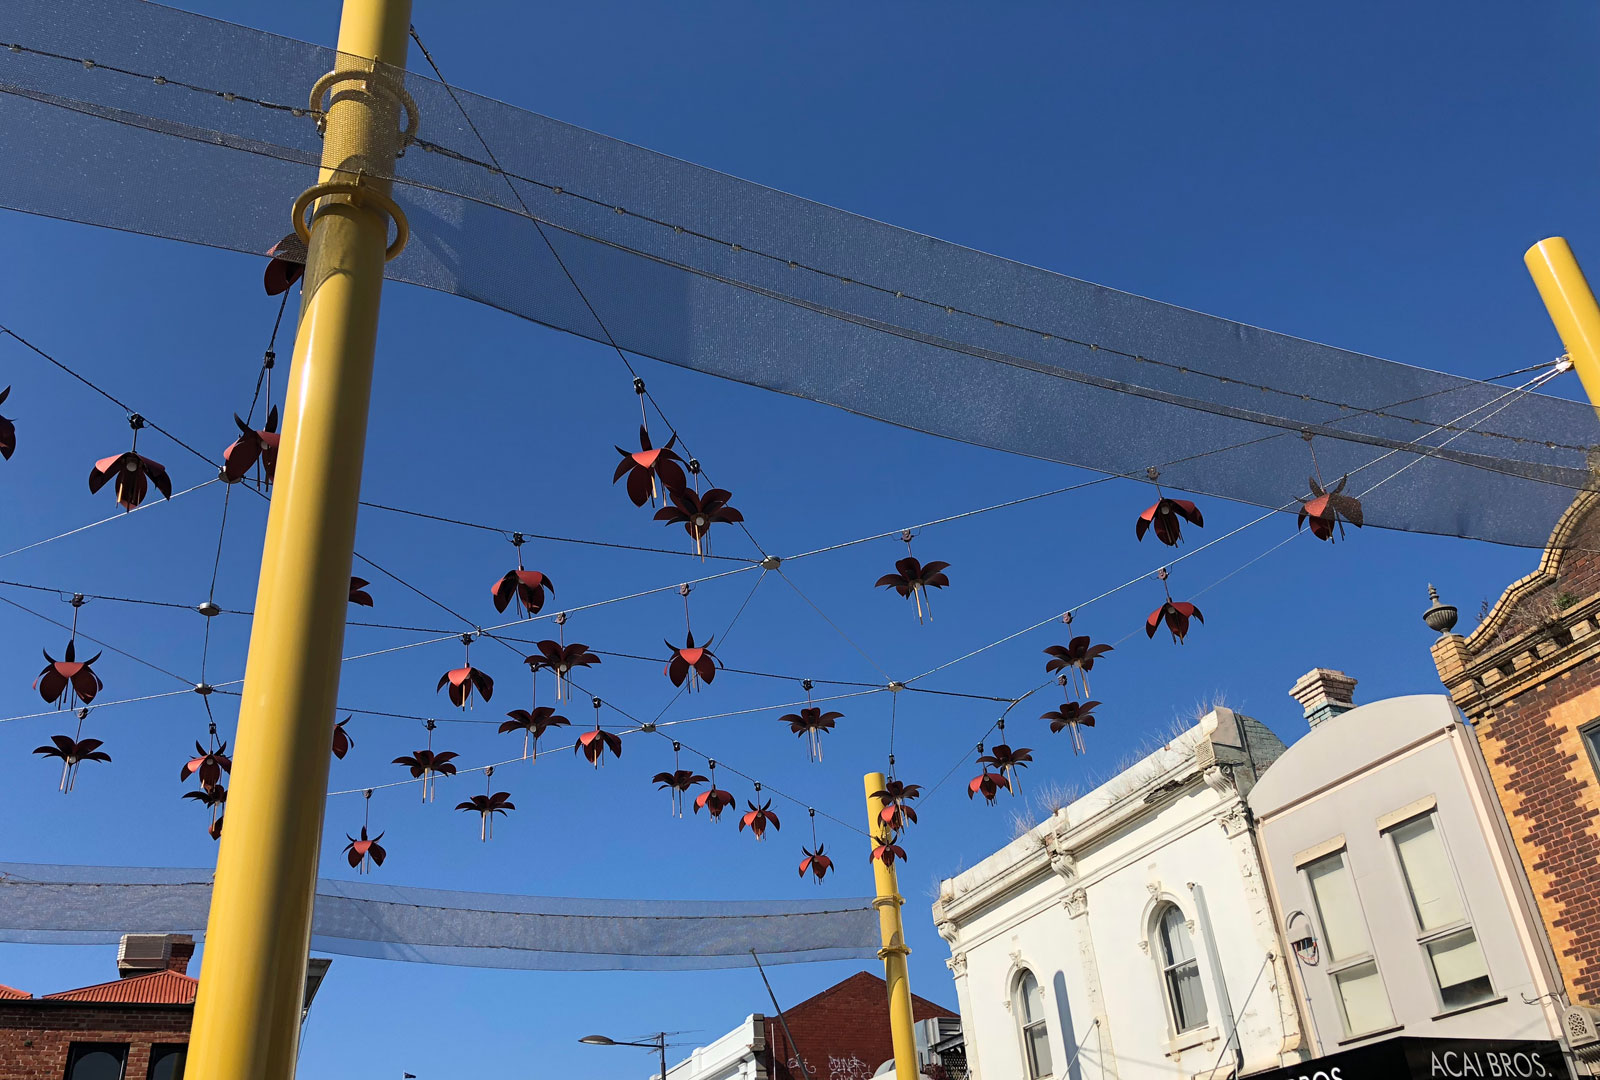 SUPPLY - Greville St Catenary